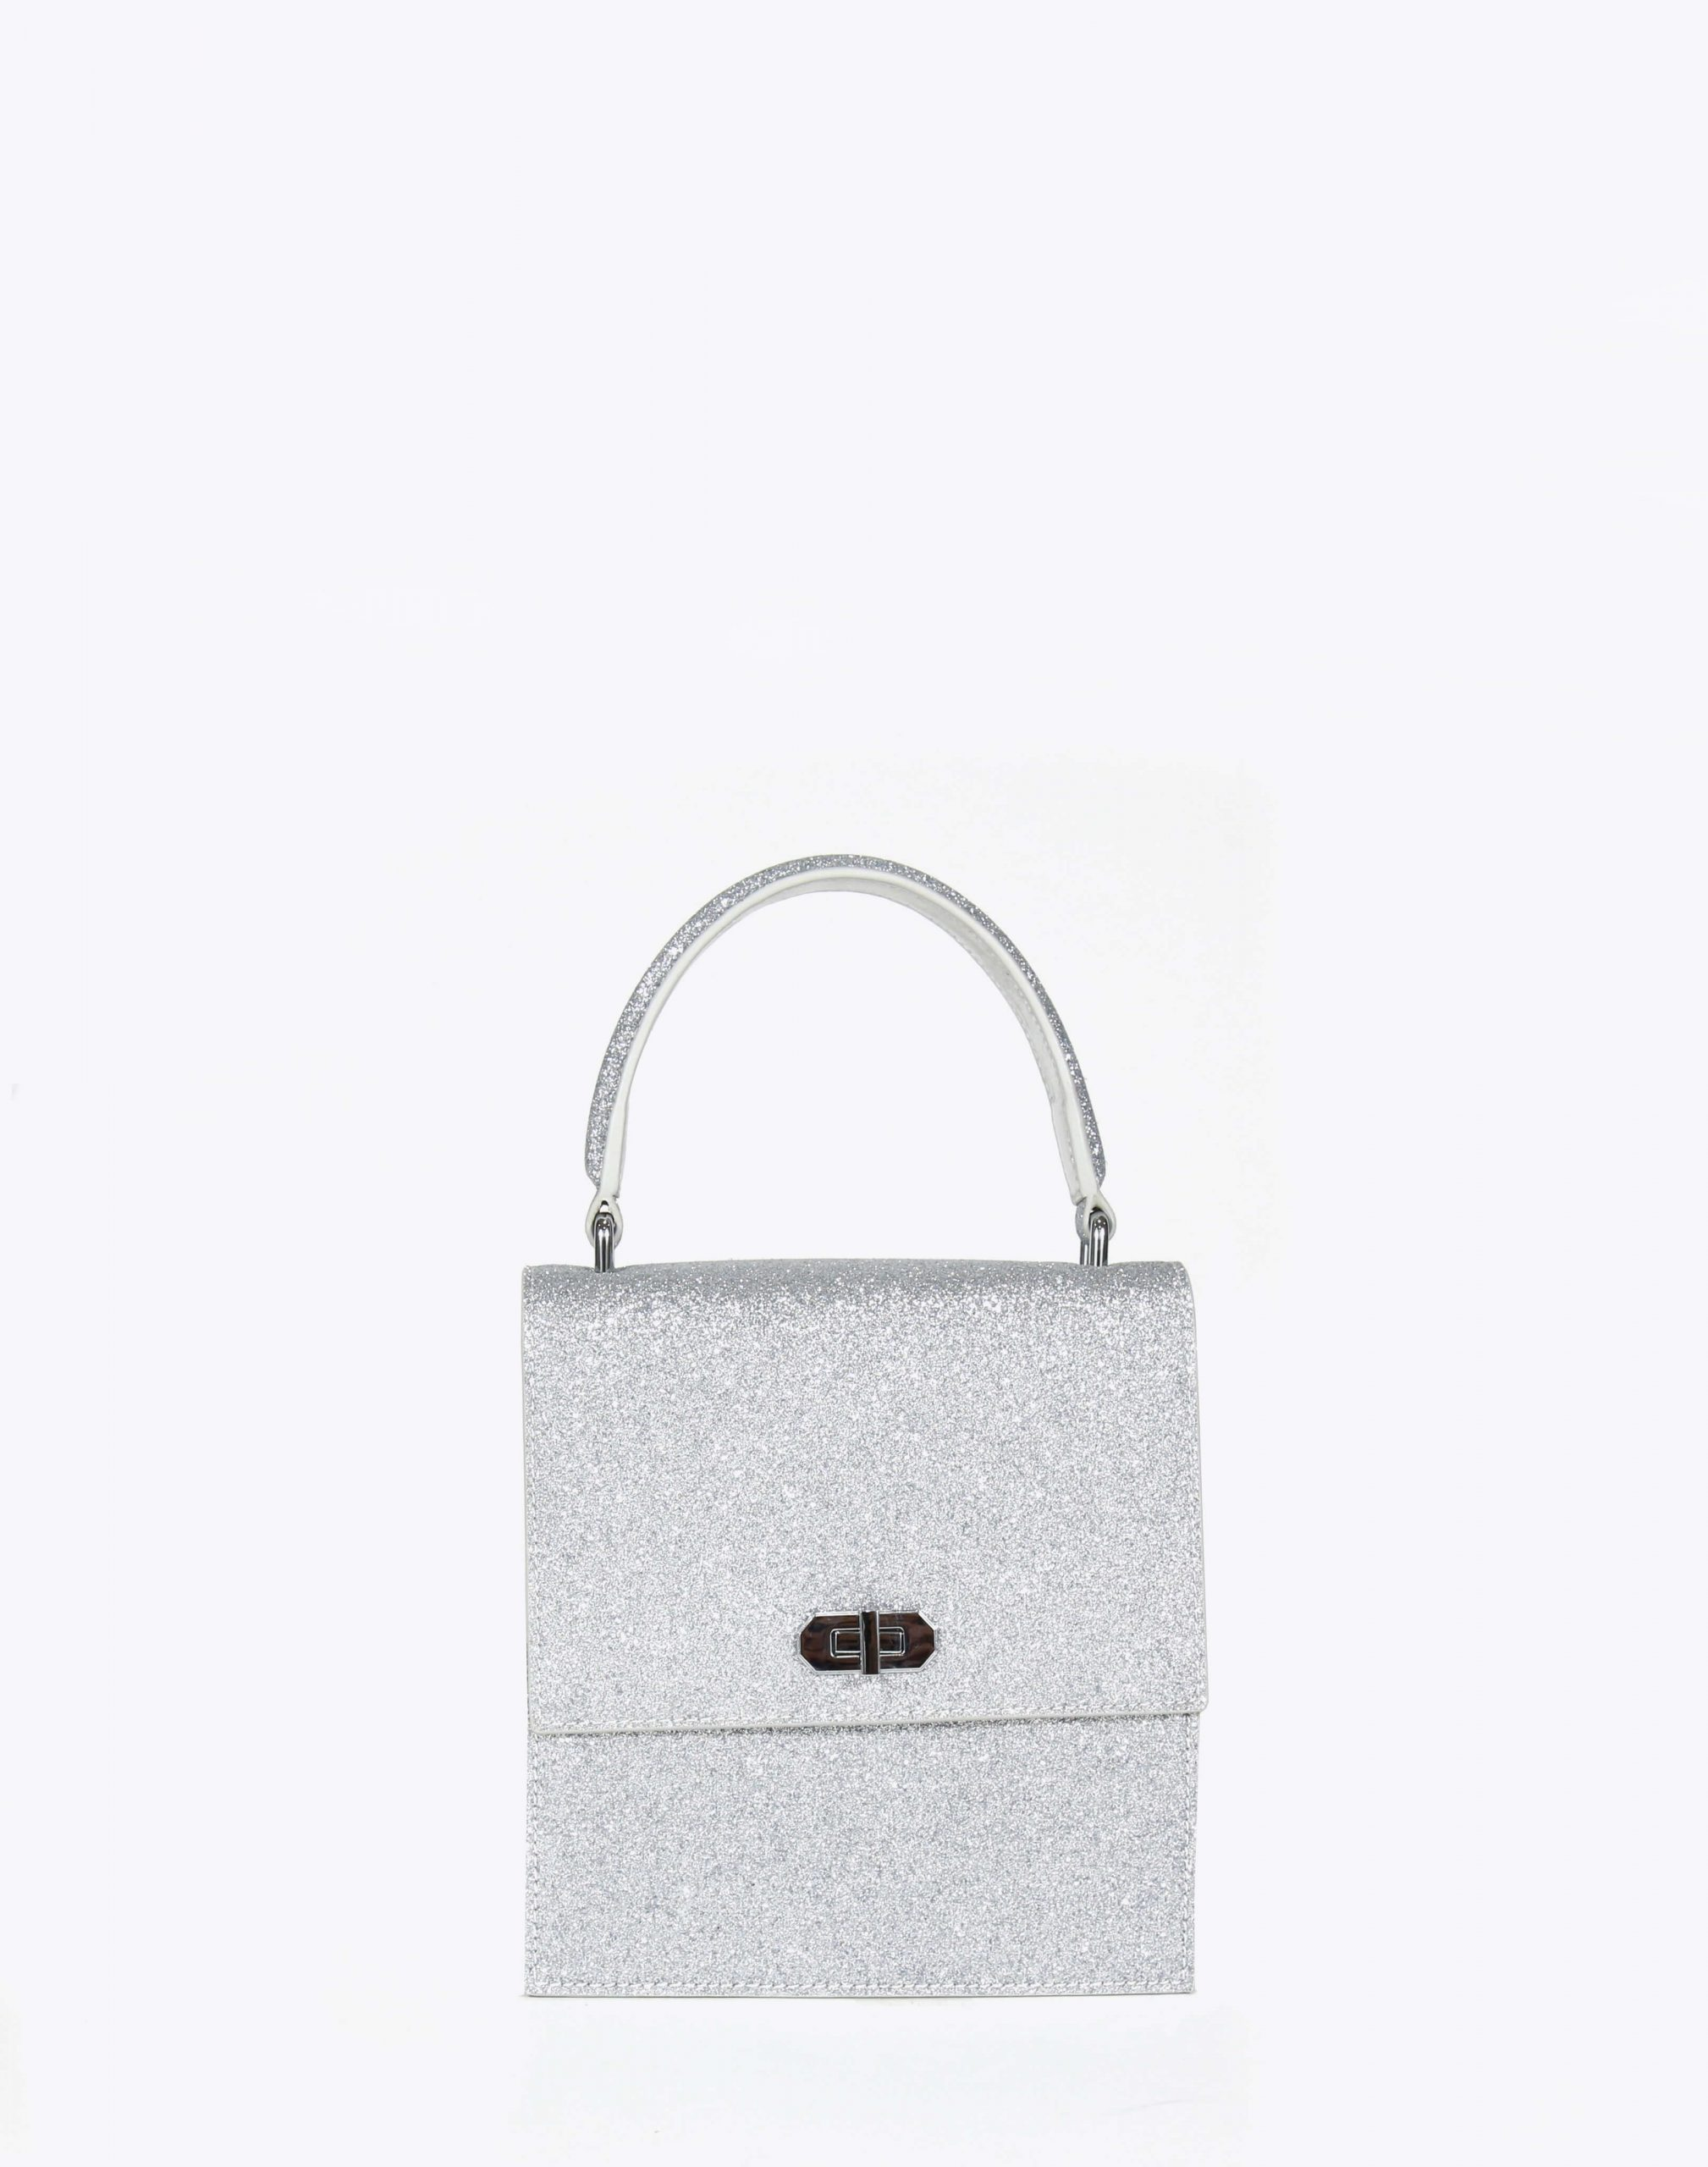 Neely & Chloe No. 19 Mini Lady Bag Front View Silver